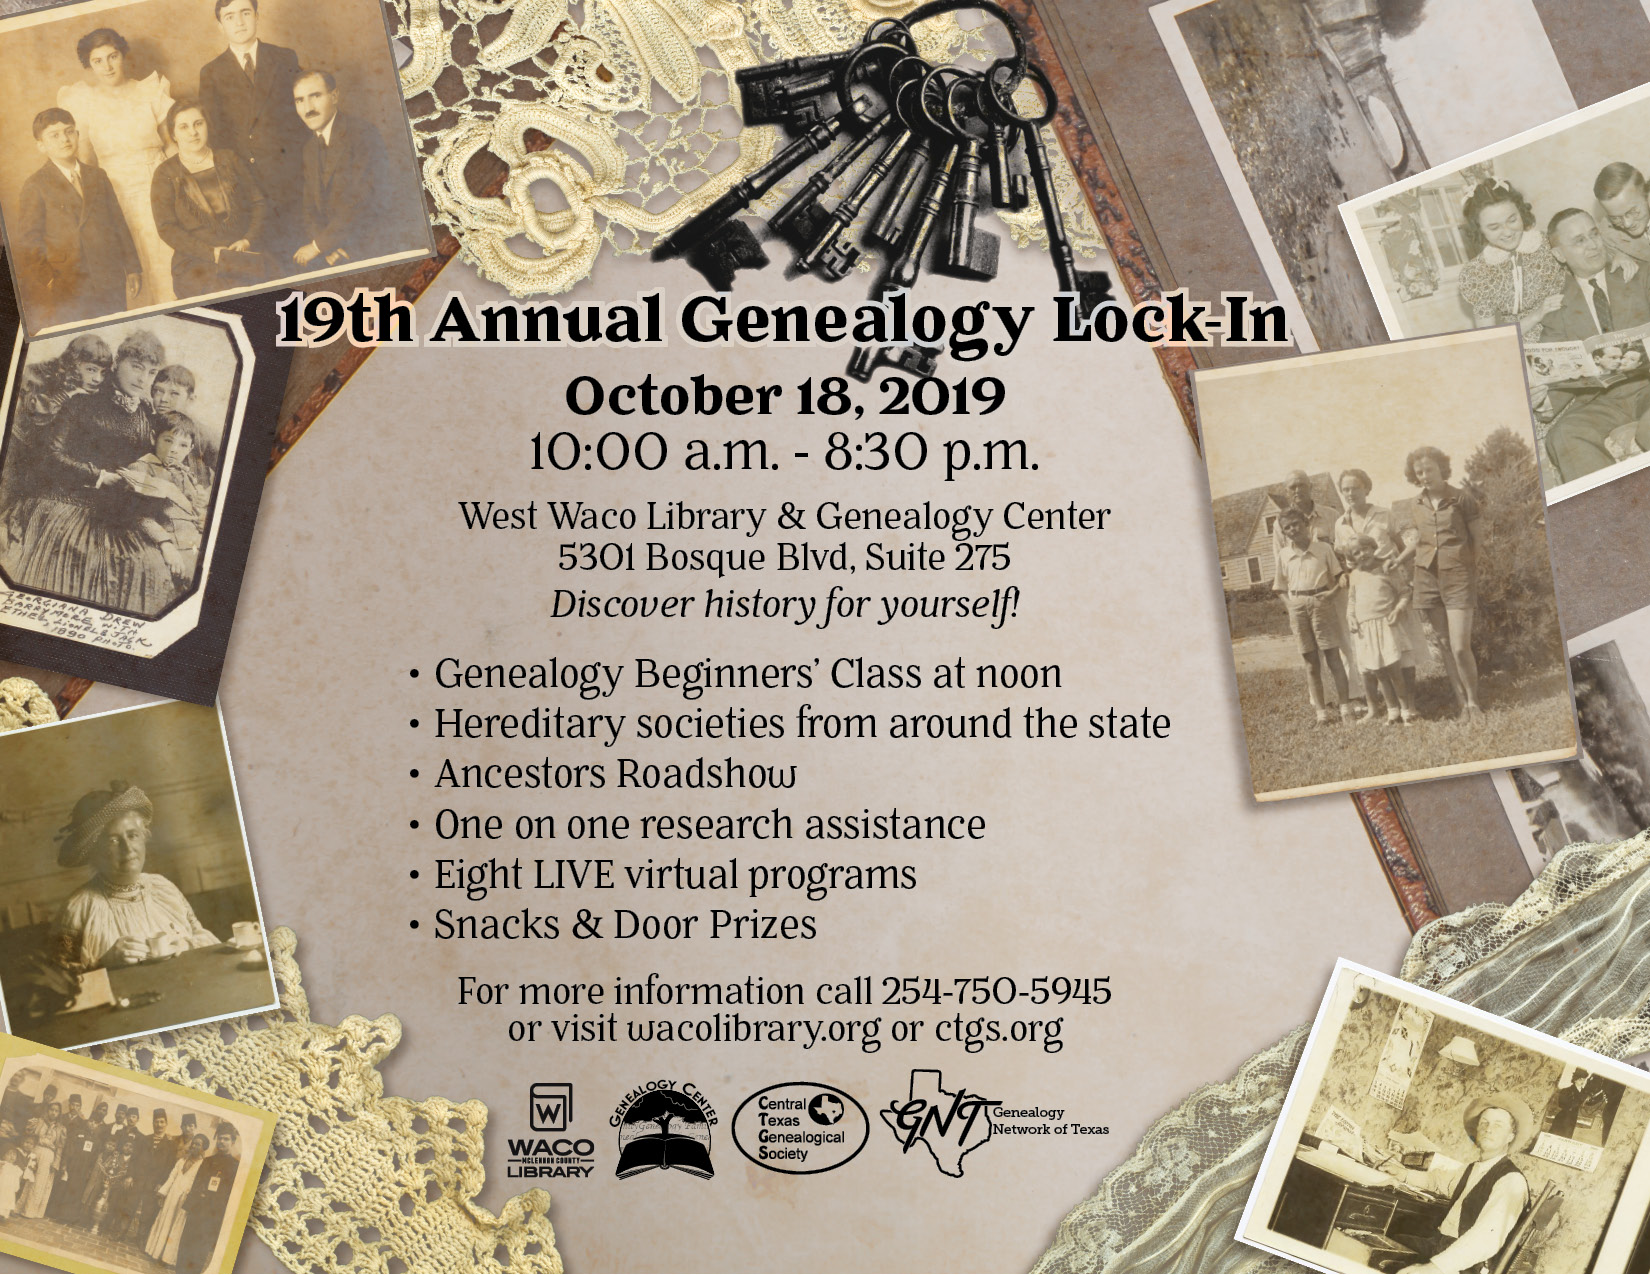 19th Annual Genealogy Lock-in